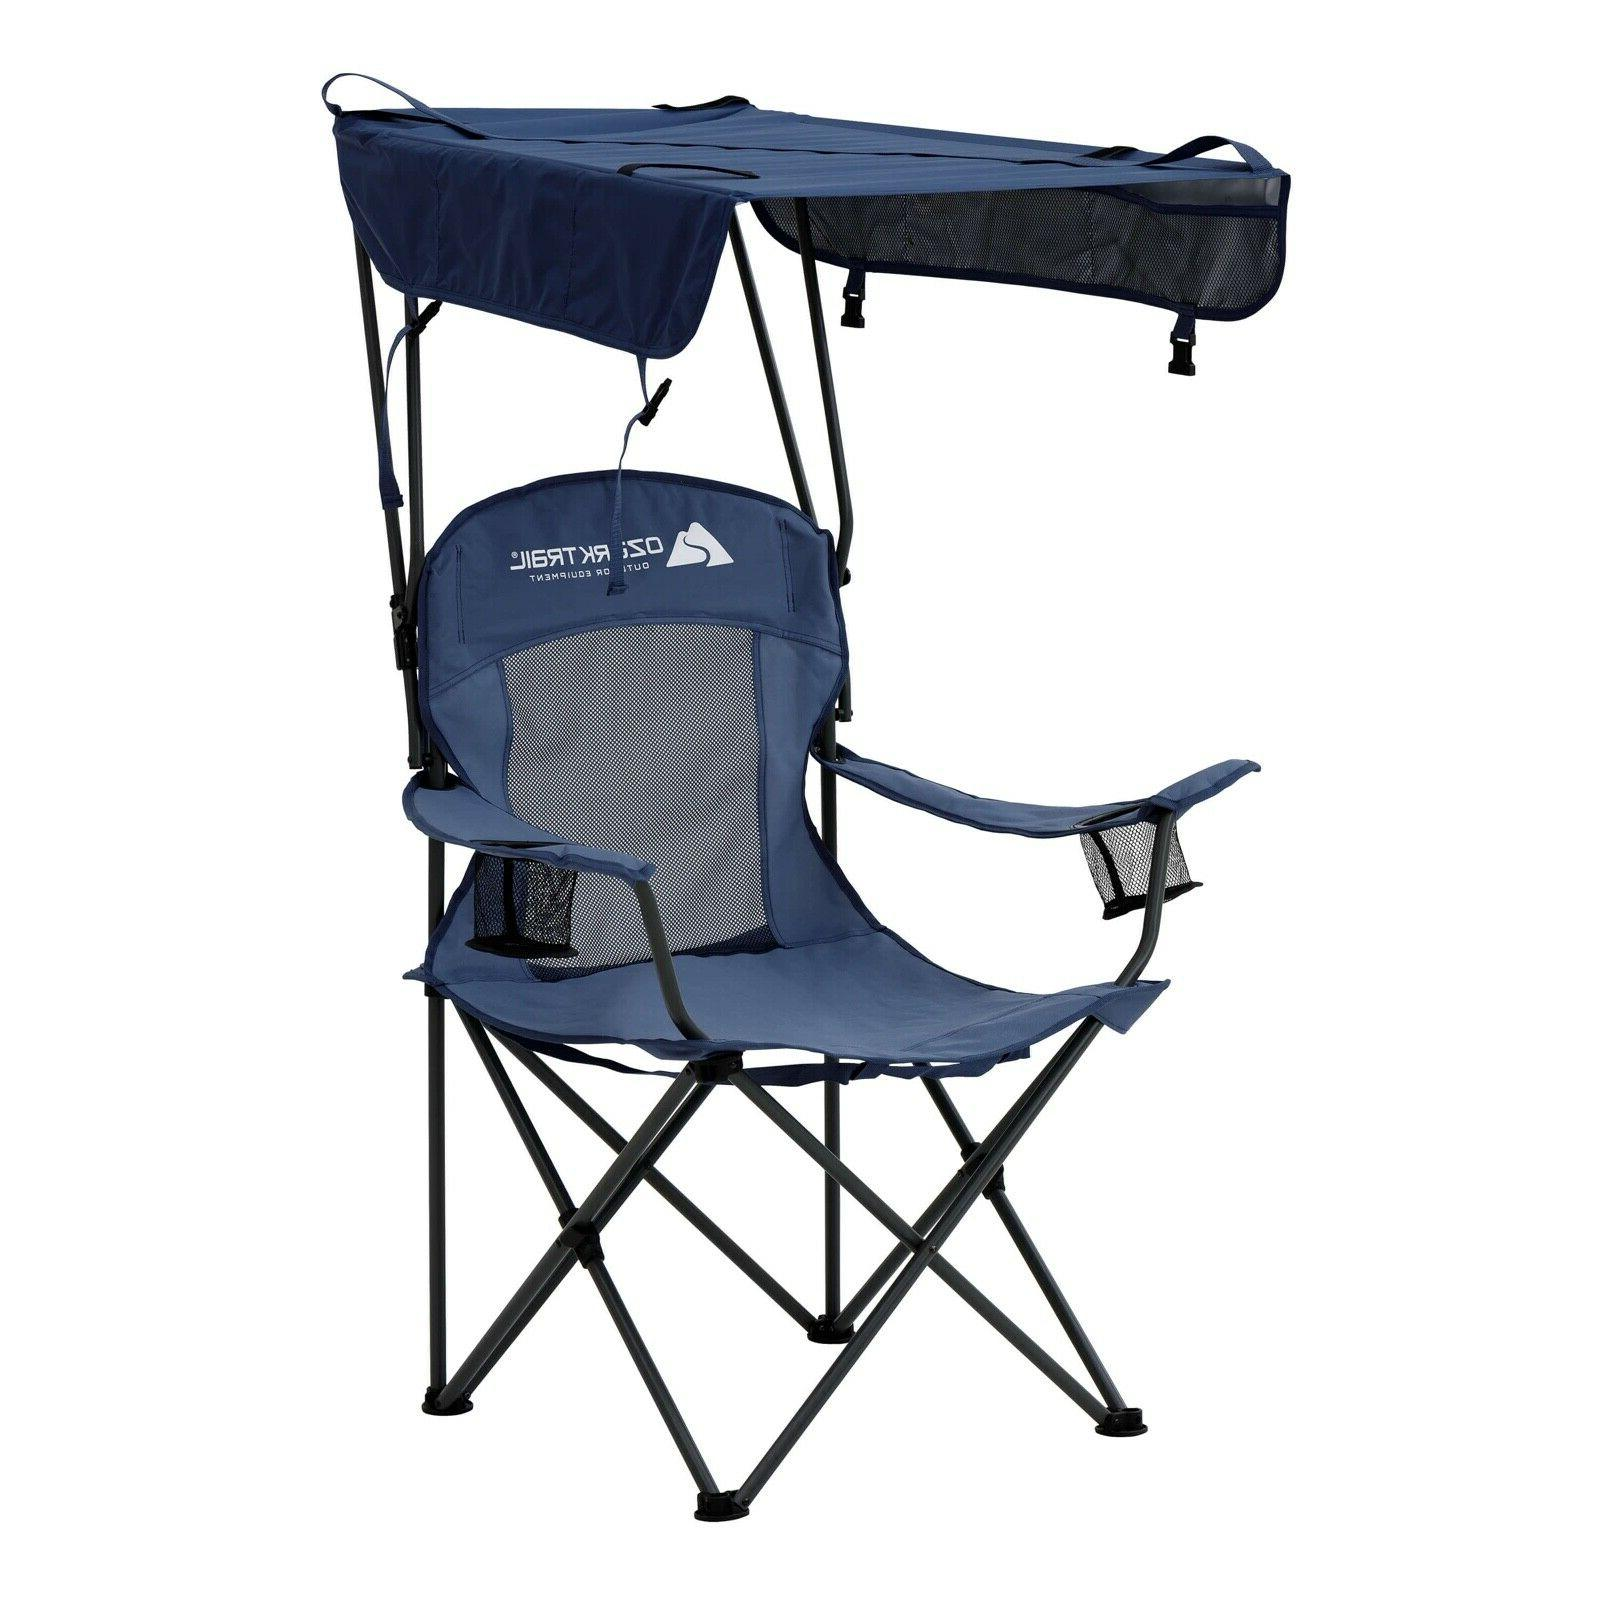 potable folding canopy camping chair with cup